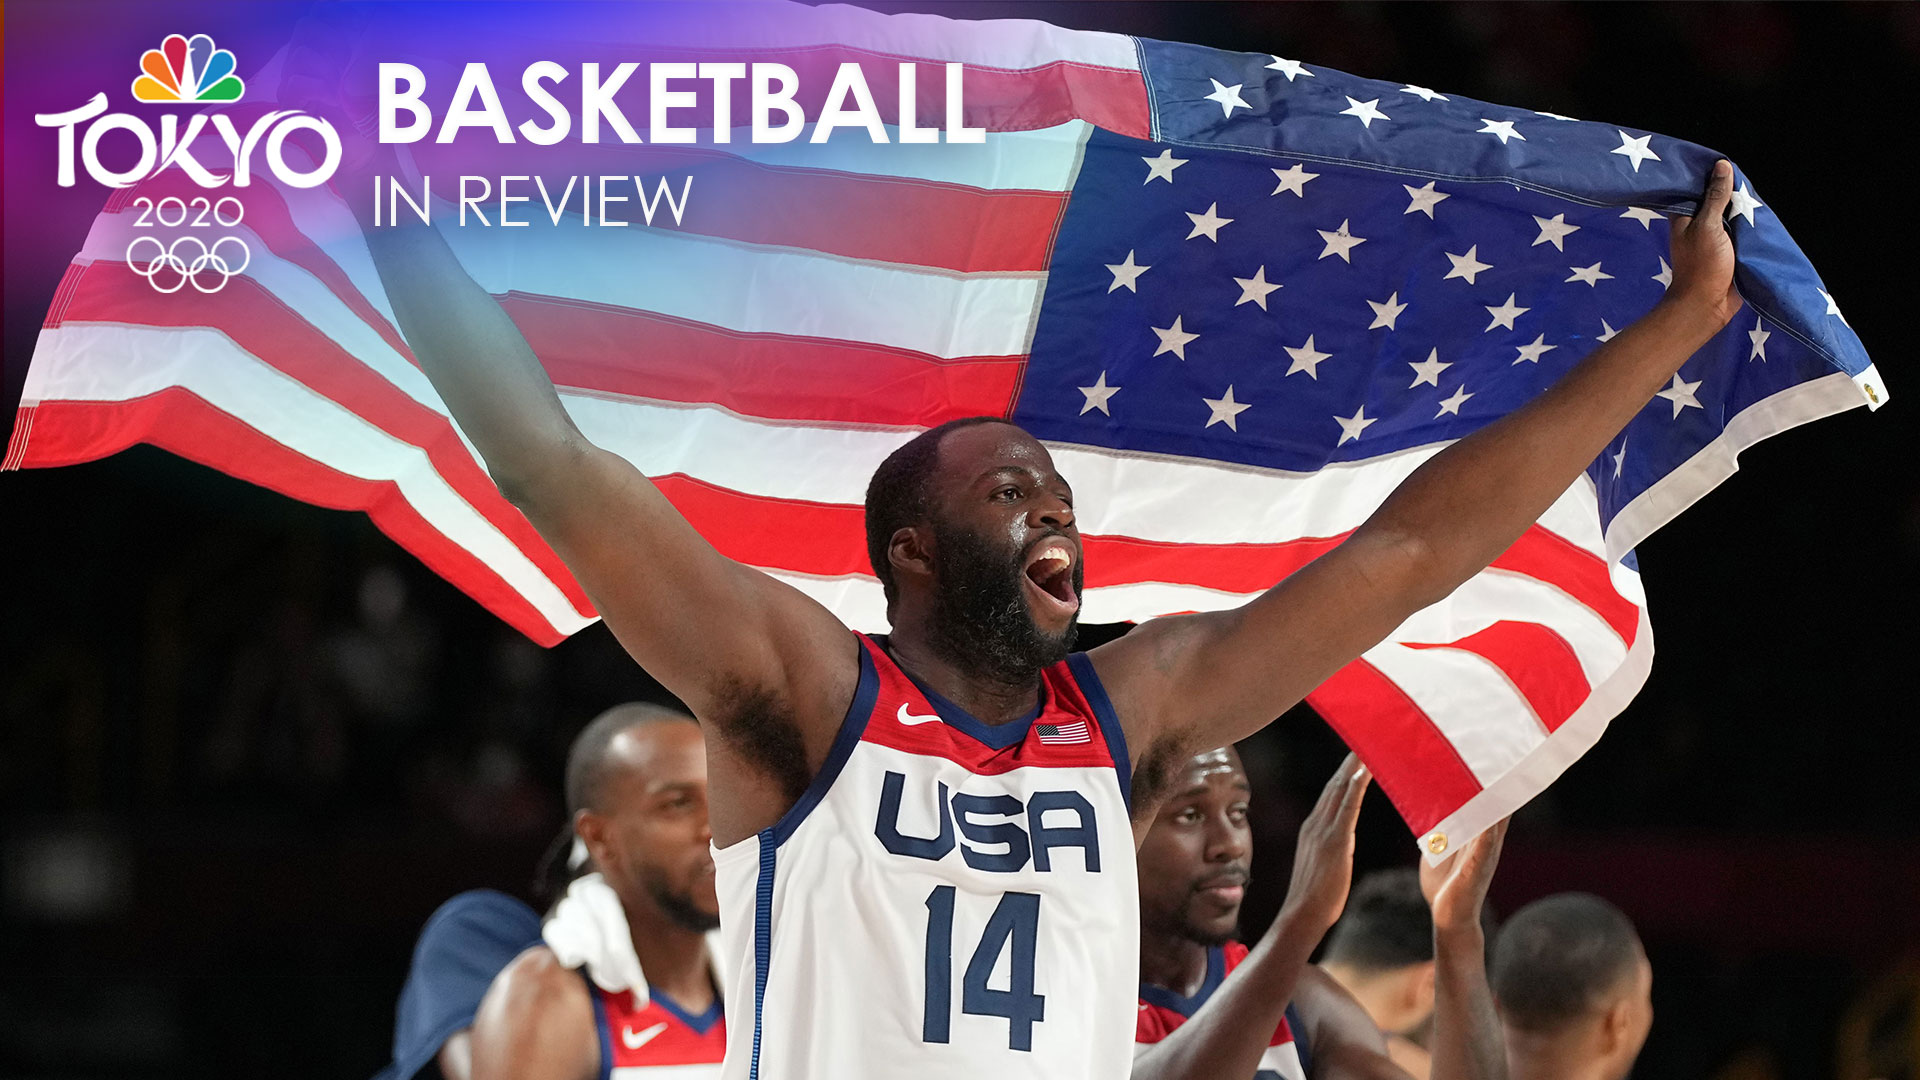 Image for Tokyo Olympics basketball in review: USA continues its hoops domination